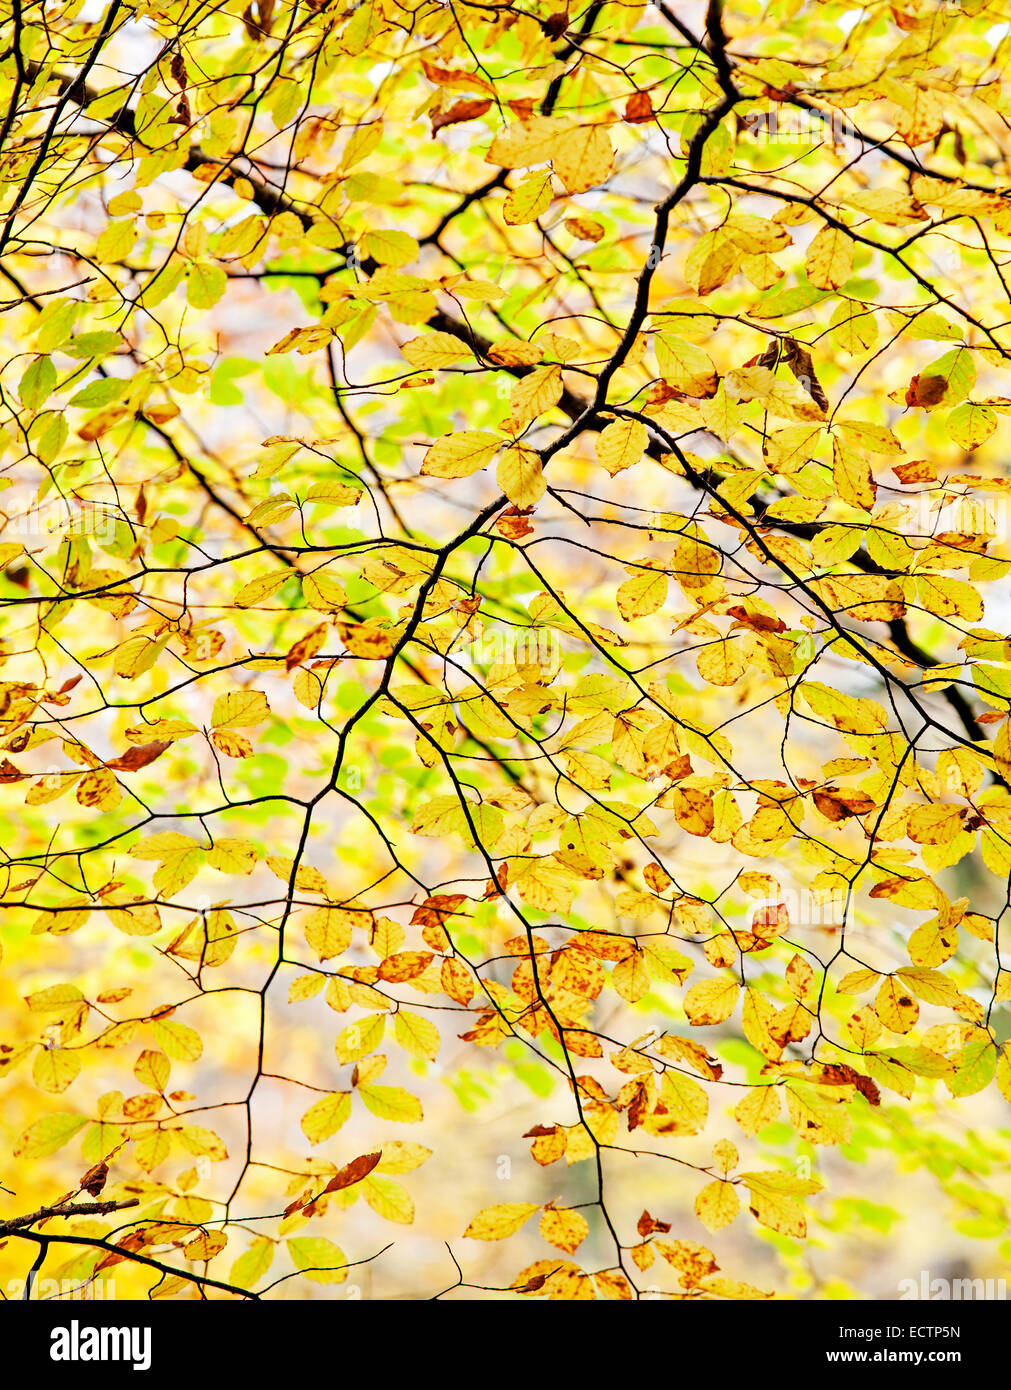 Beech tree - Fagus sylvatica - Branches and leaves - Stock Image